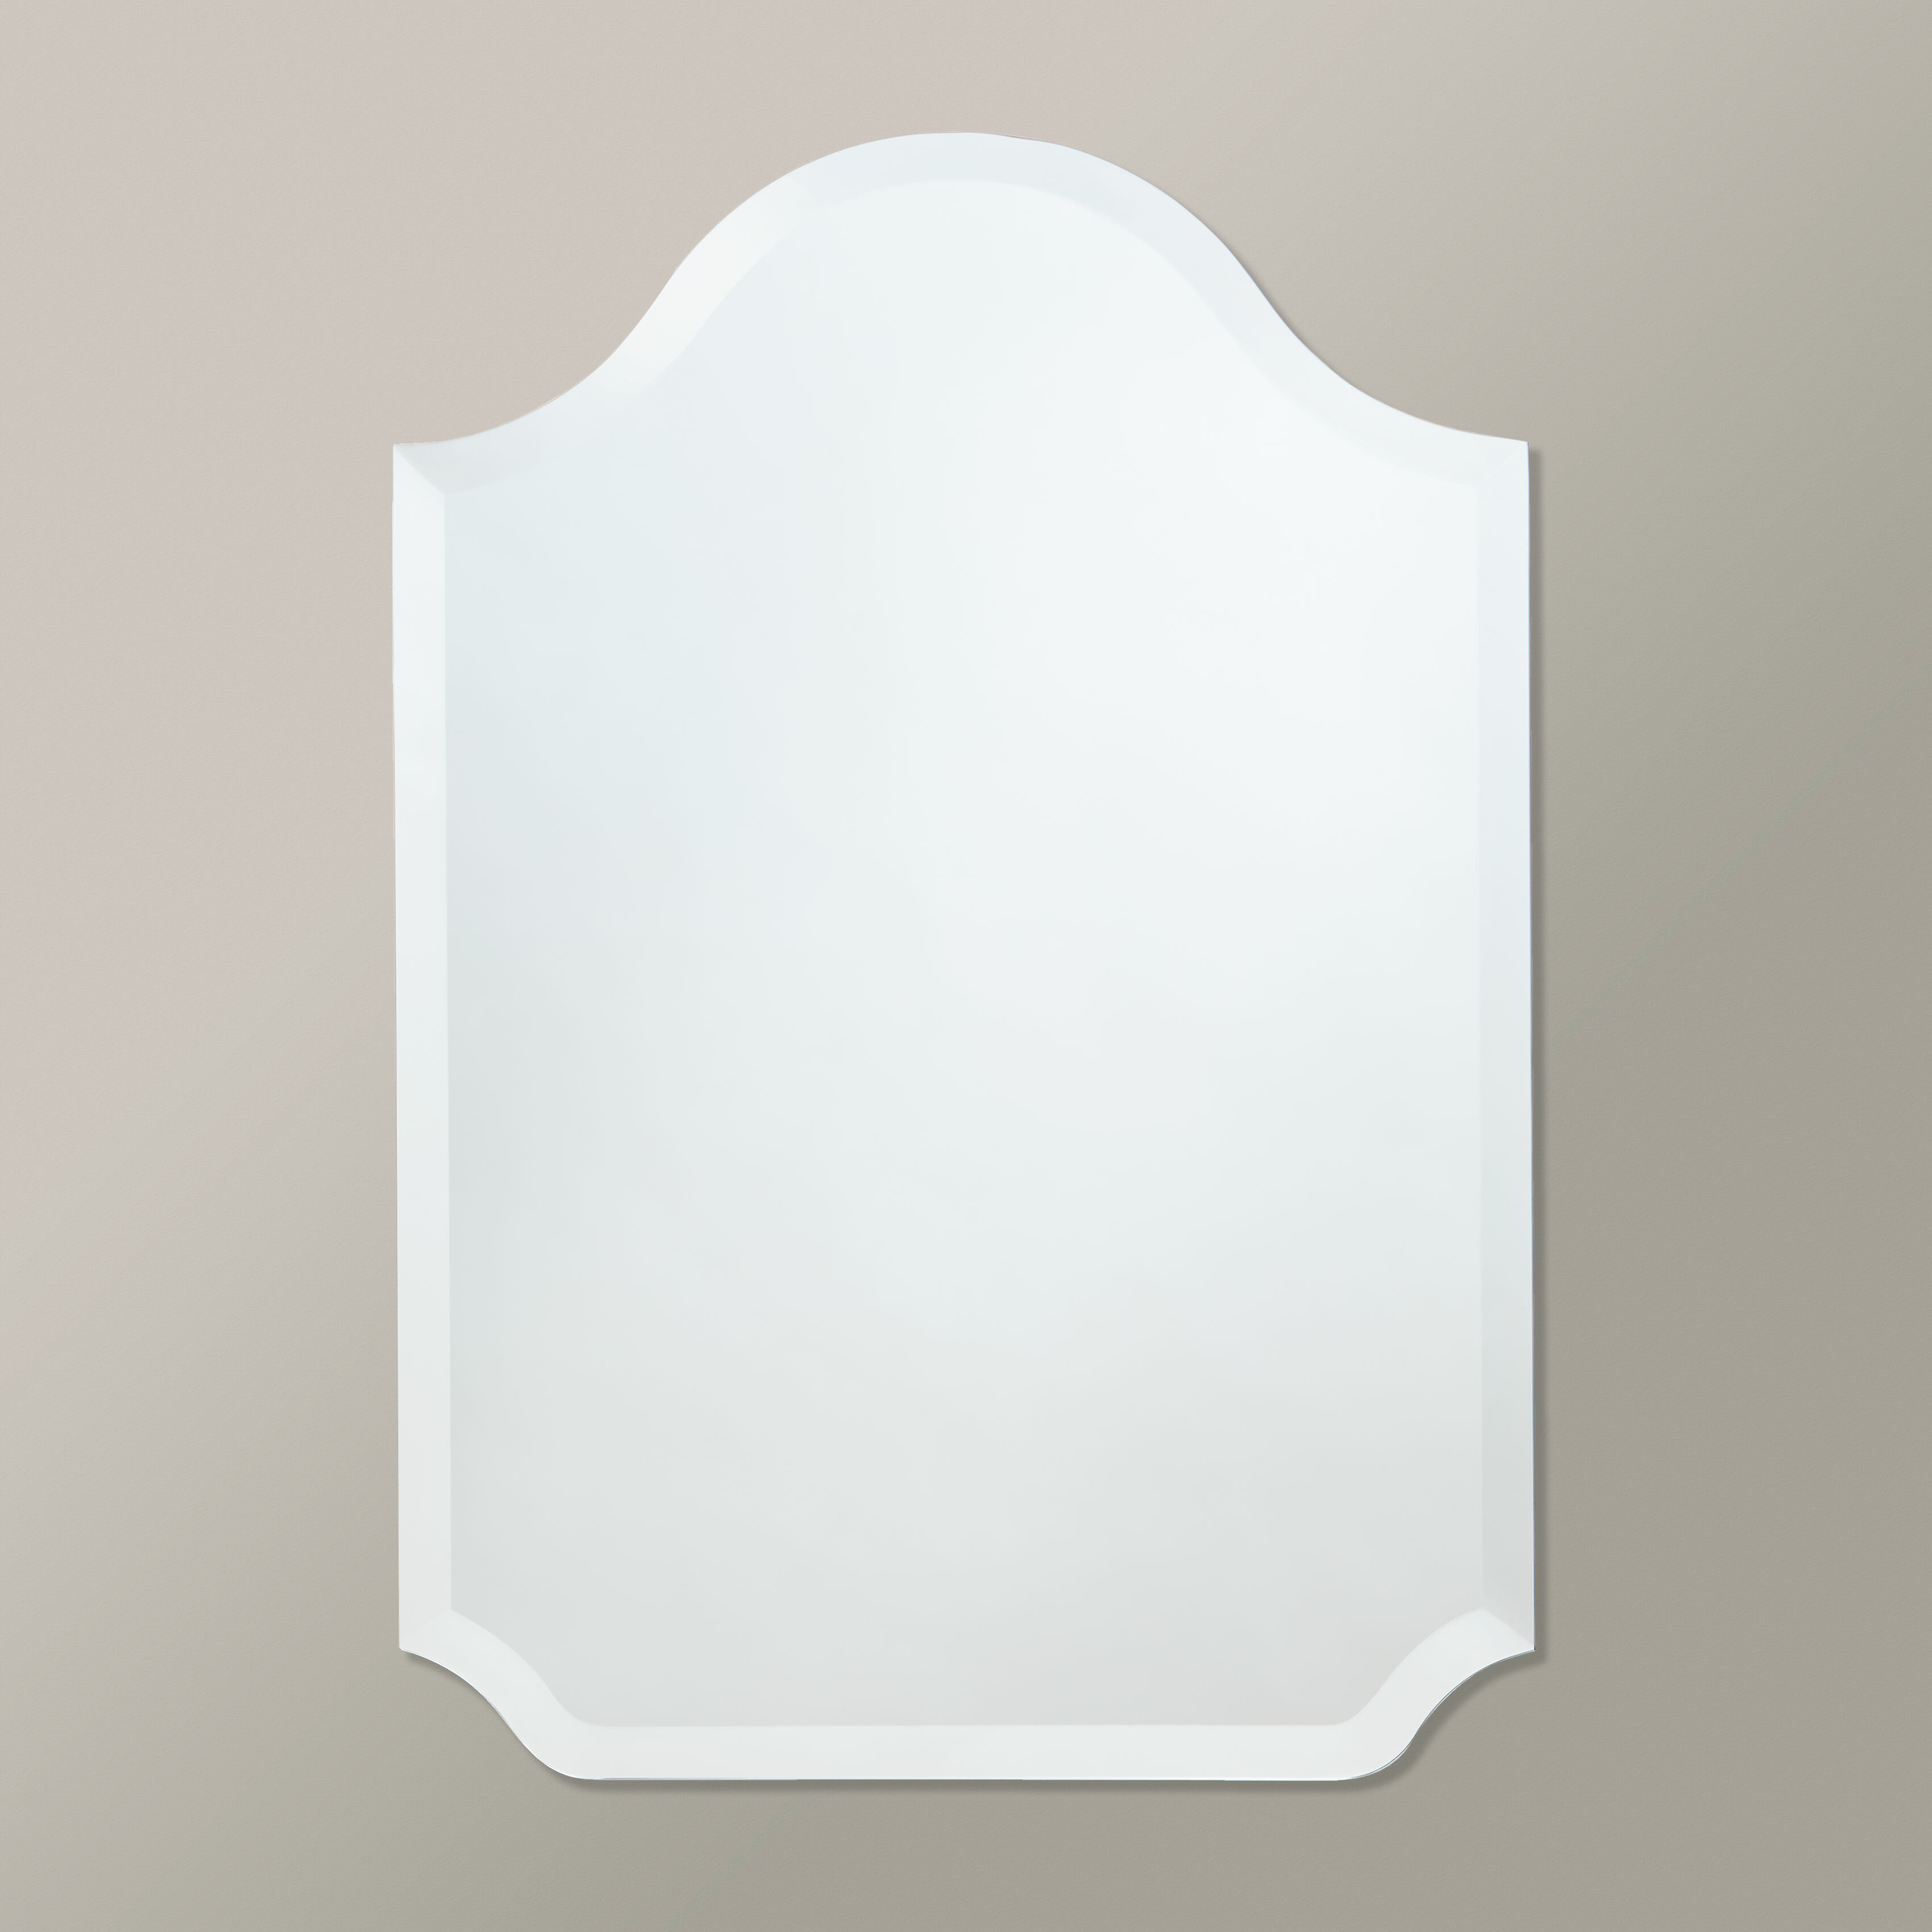 Scalloped Glass Mirror | Wayfair Intended For Dariel Tall Arched Scalloped Wall Mirrors (Image 16 of 20)